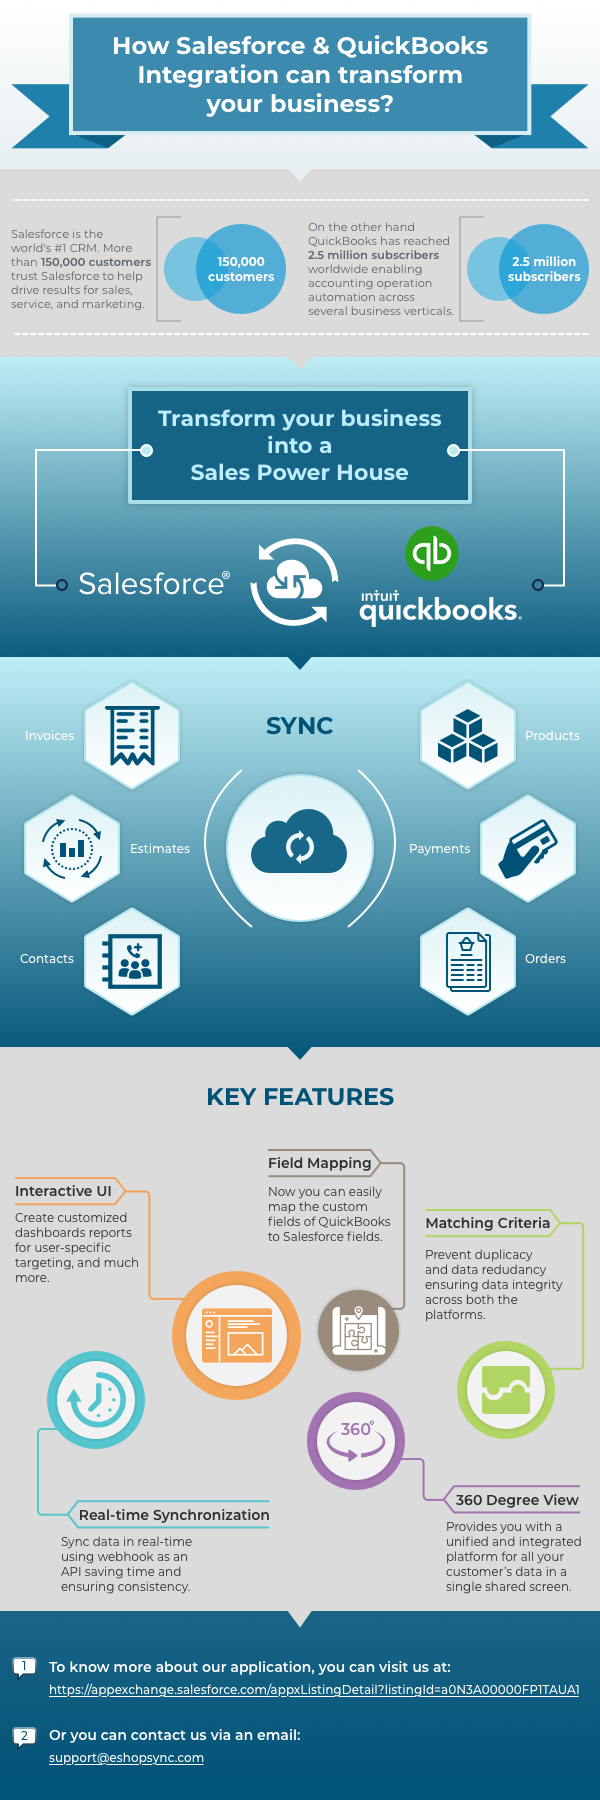 Salesforce and QuickBooks Integration - Transform your Business